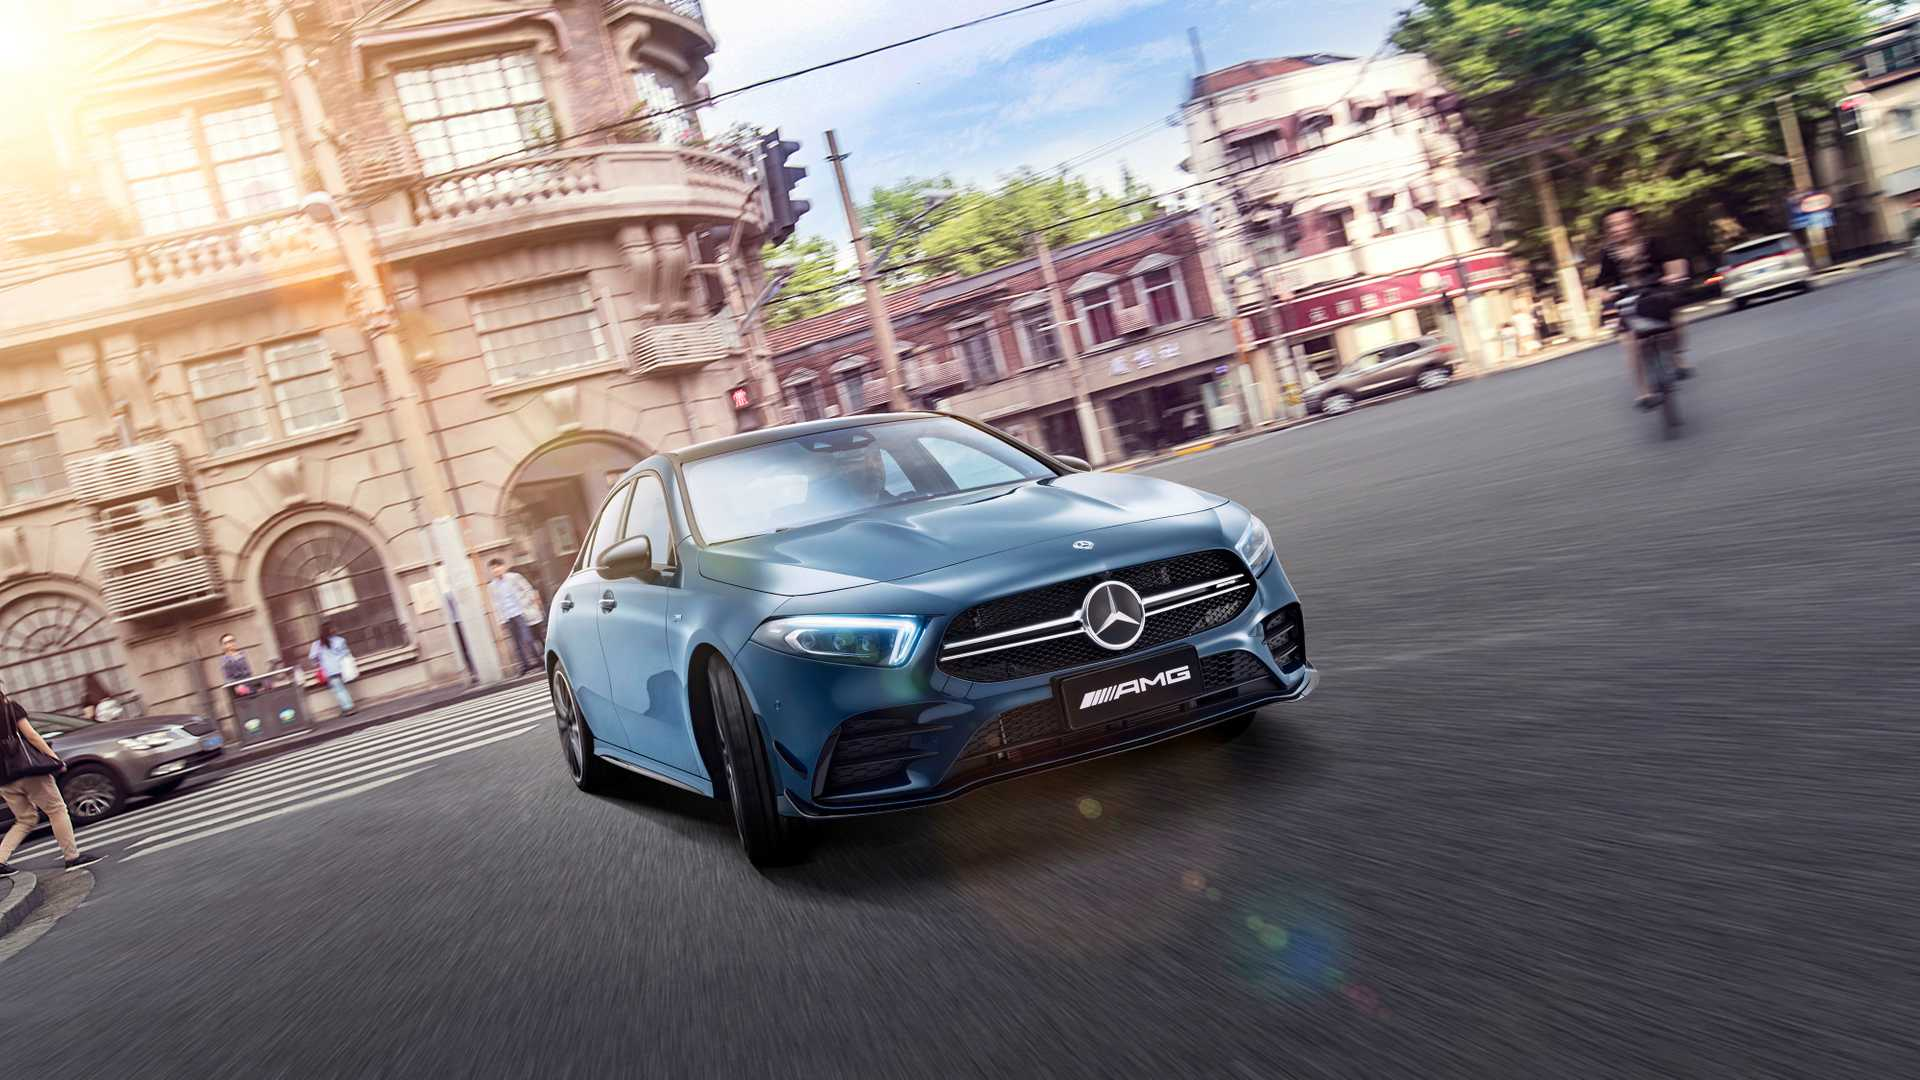 2020 Mercedes-AMG A35 L Sedan 4MATIC Front Three-Quarter Wallpaper (1)